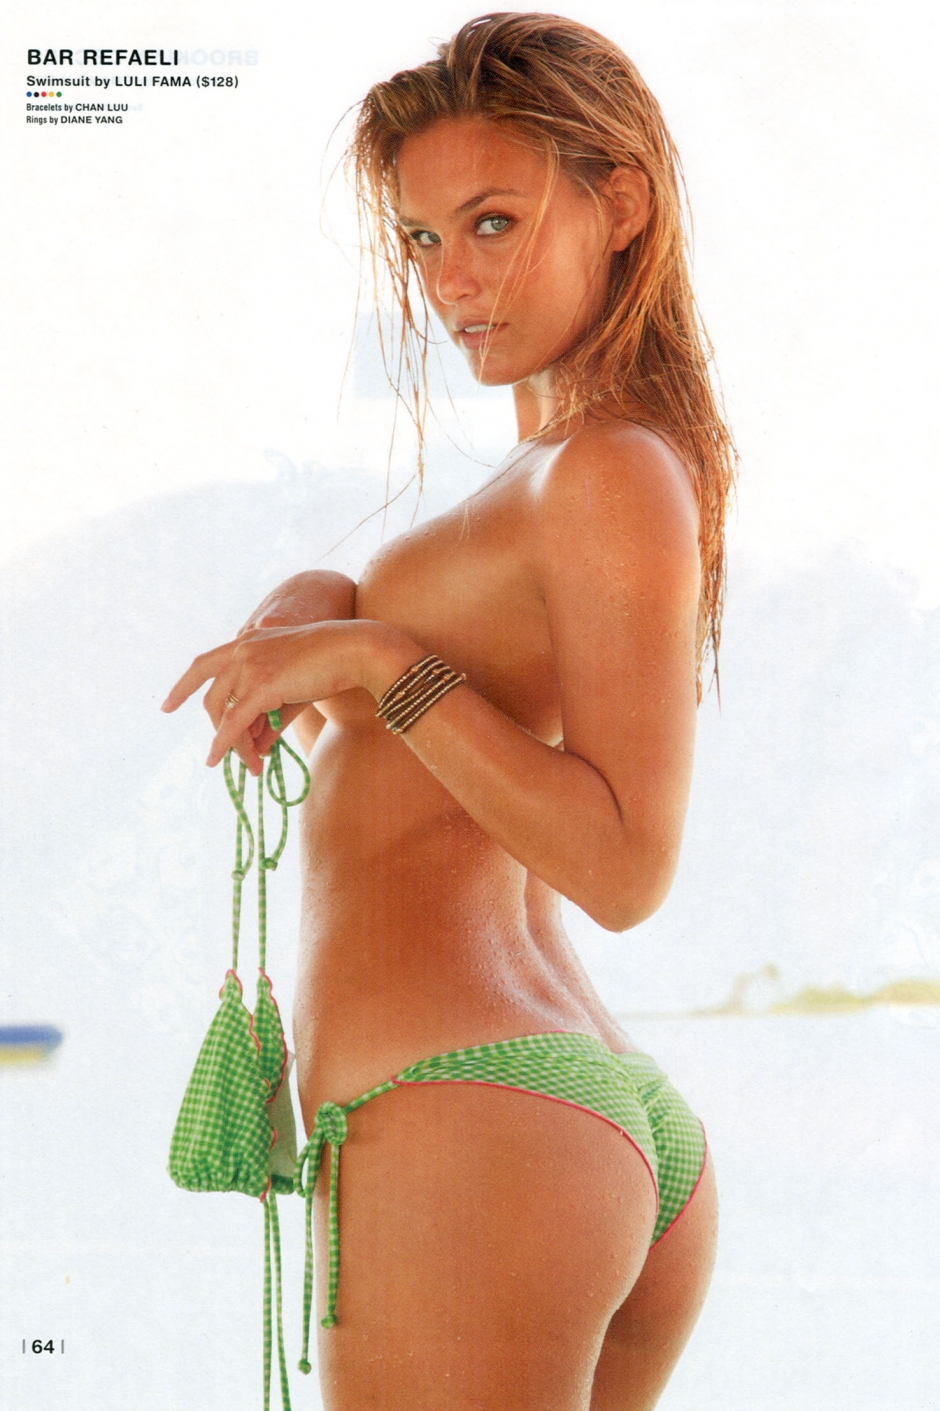 bar refaeli in a - photo #8